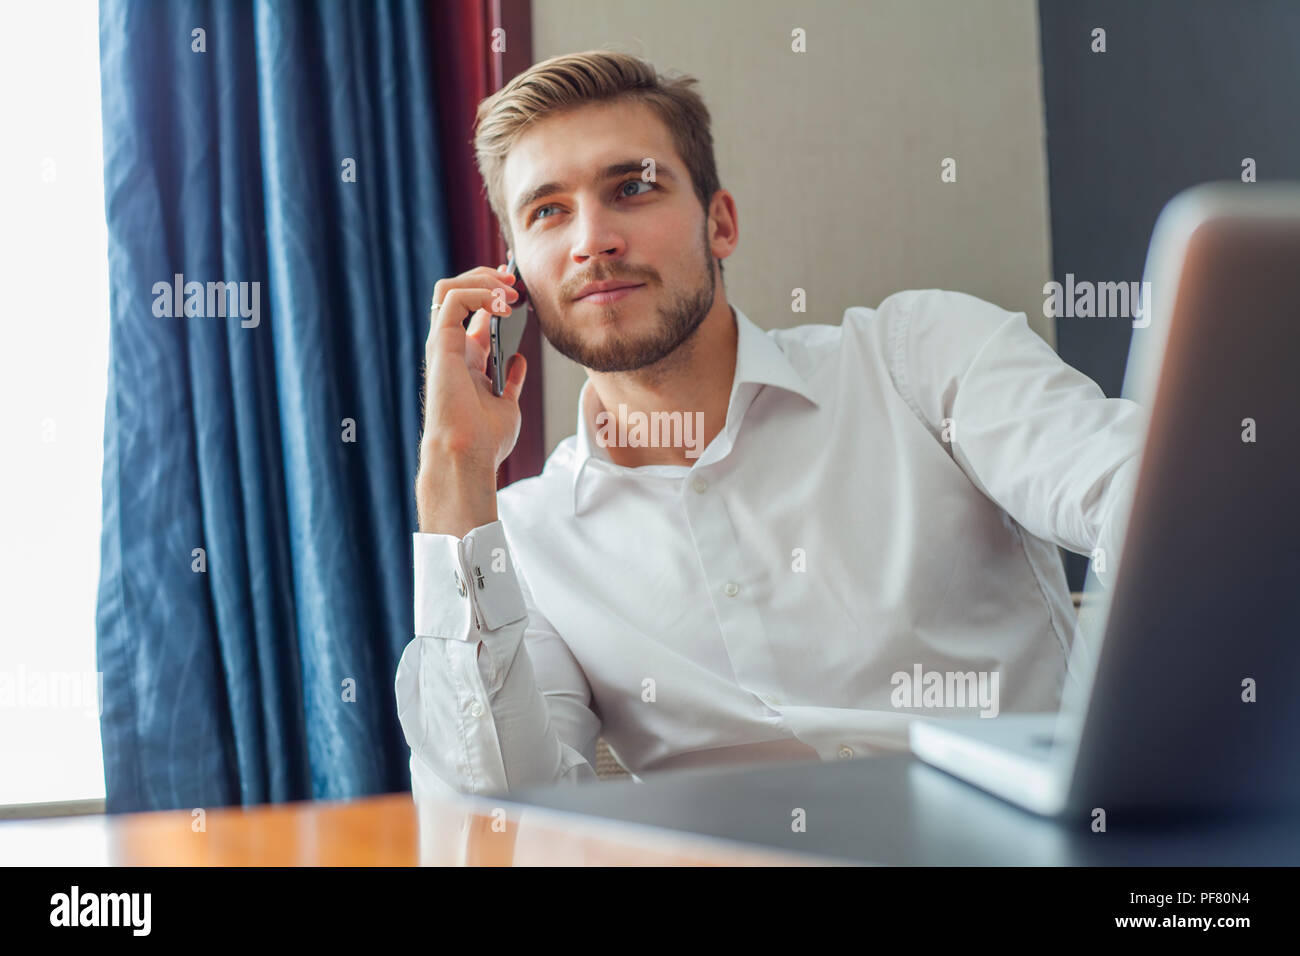 Portrait of handsome young entrepreneur speaking by phone and using laptop while working in comfortable hotel room or office. - Stock Image